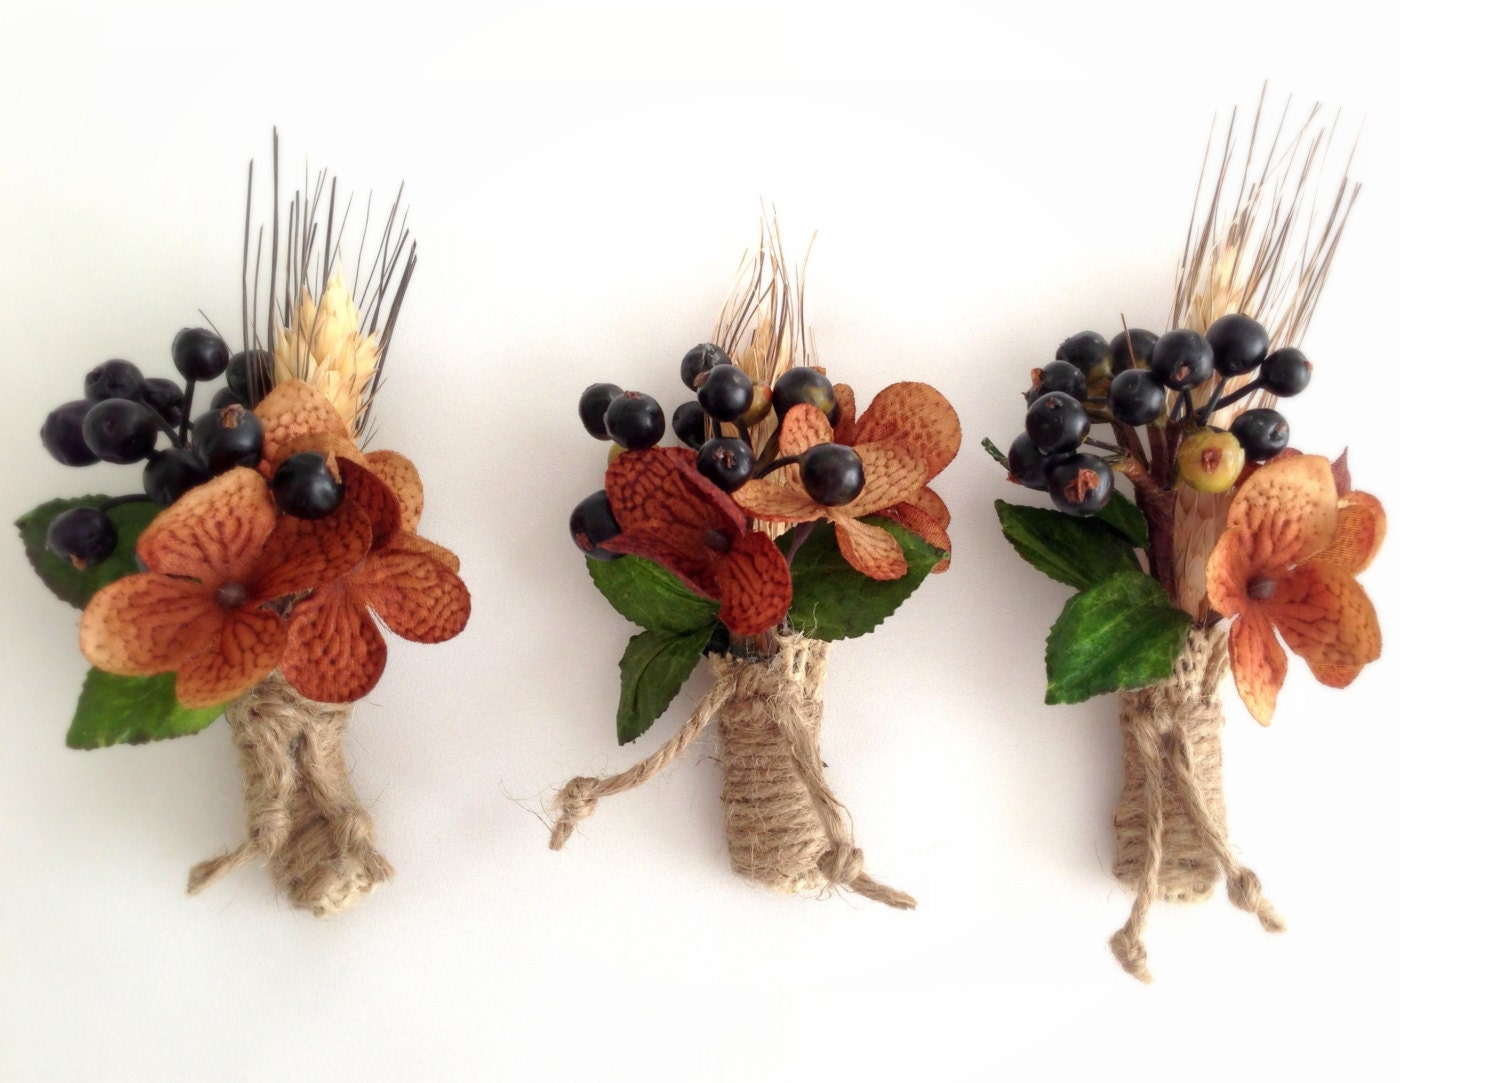 Groom's Boutonnière, Blueberries, Wheat, Hydrangea, Groom's Flower, Jute, Country Wedding,  Rustic, Fall, Winter (1) - LollysCubbyHole